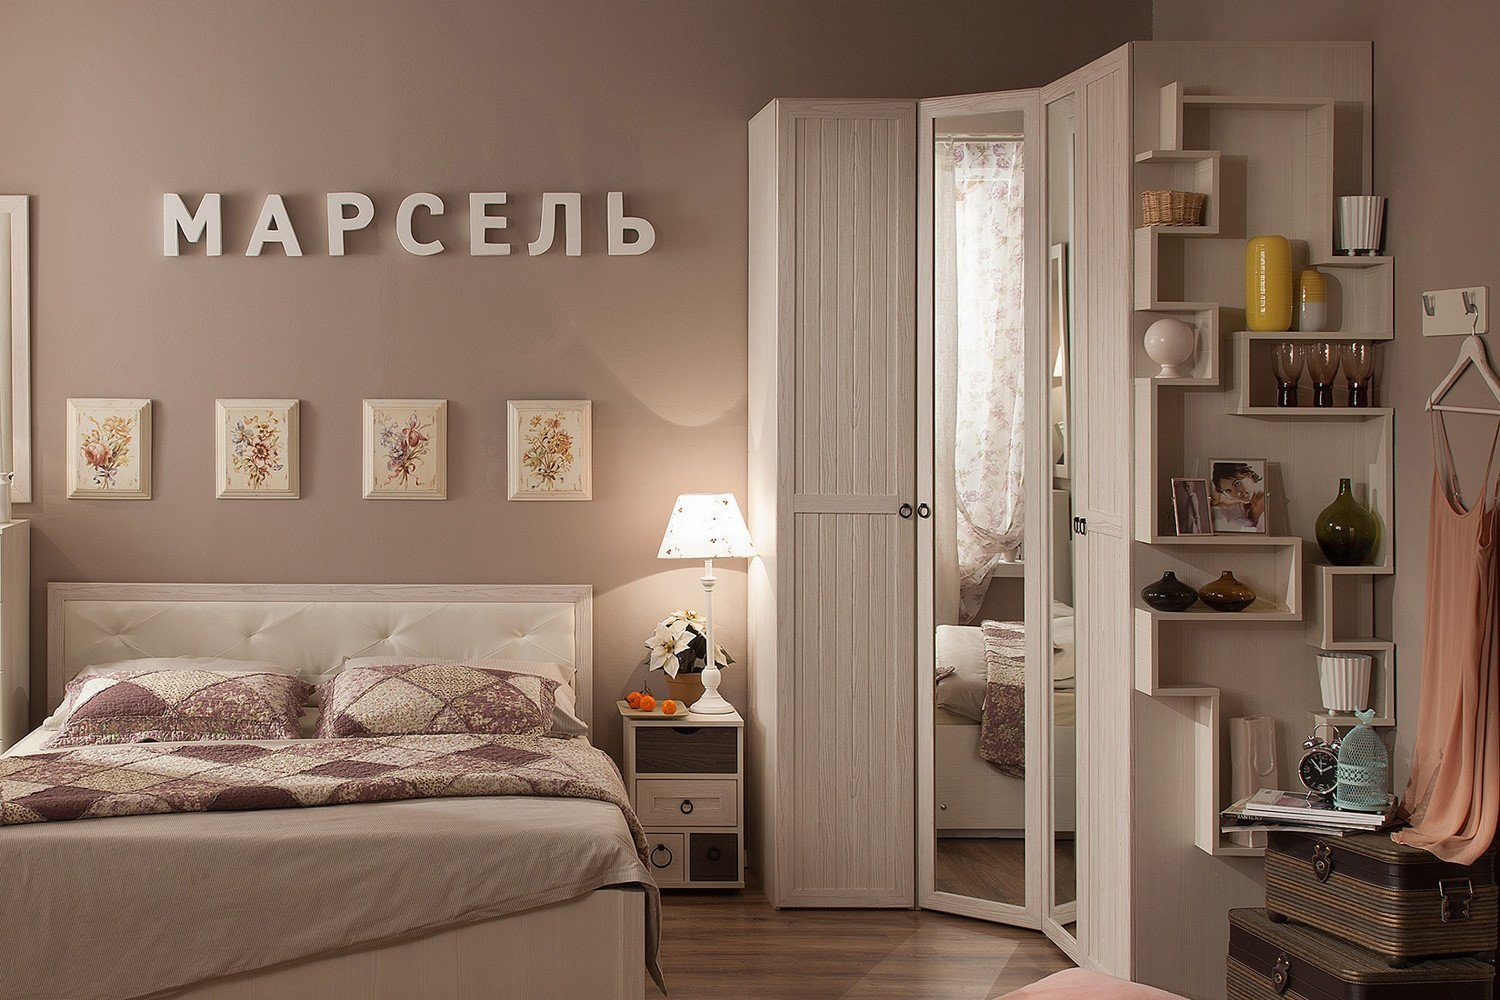 Corner furniture and picture decoration for small bedroom